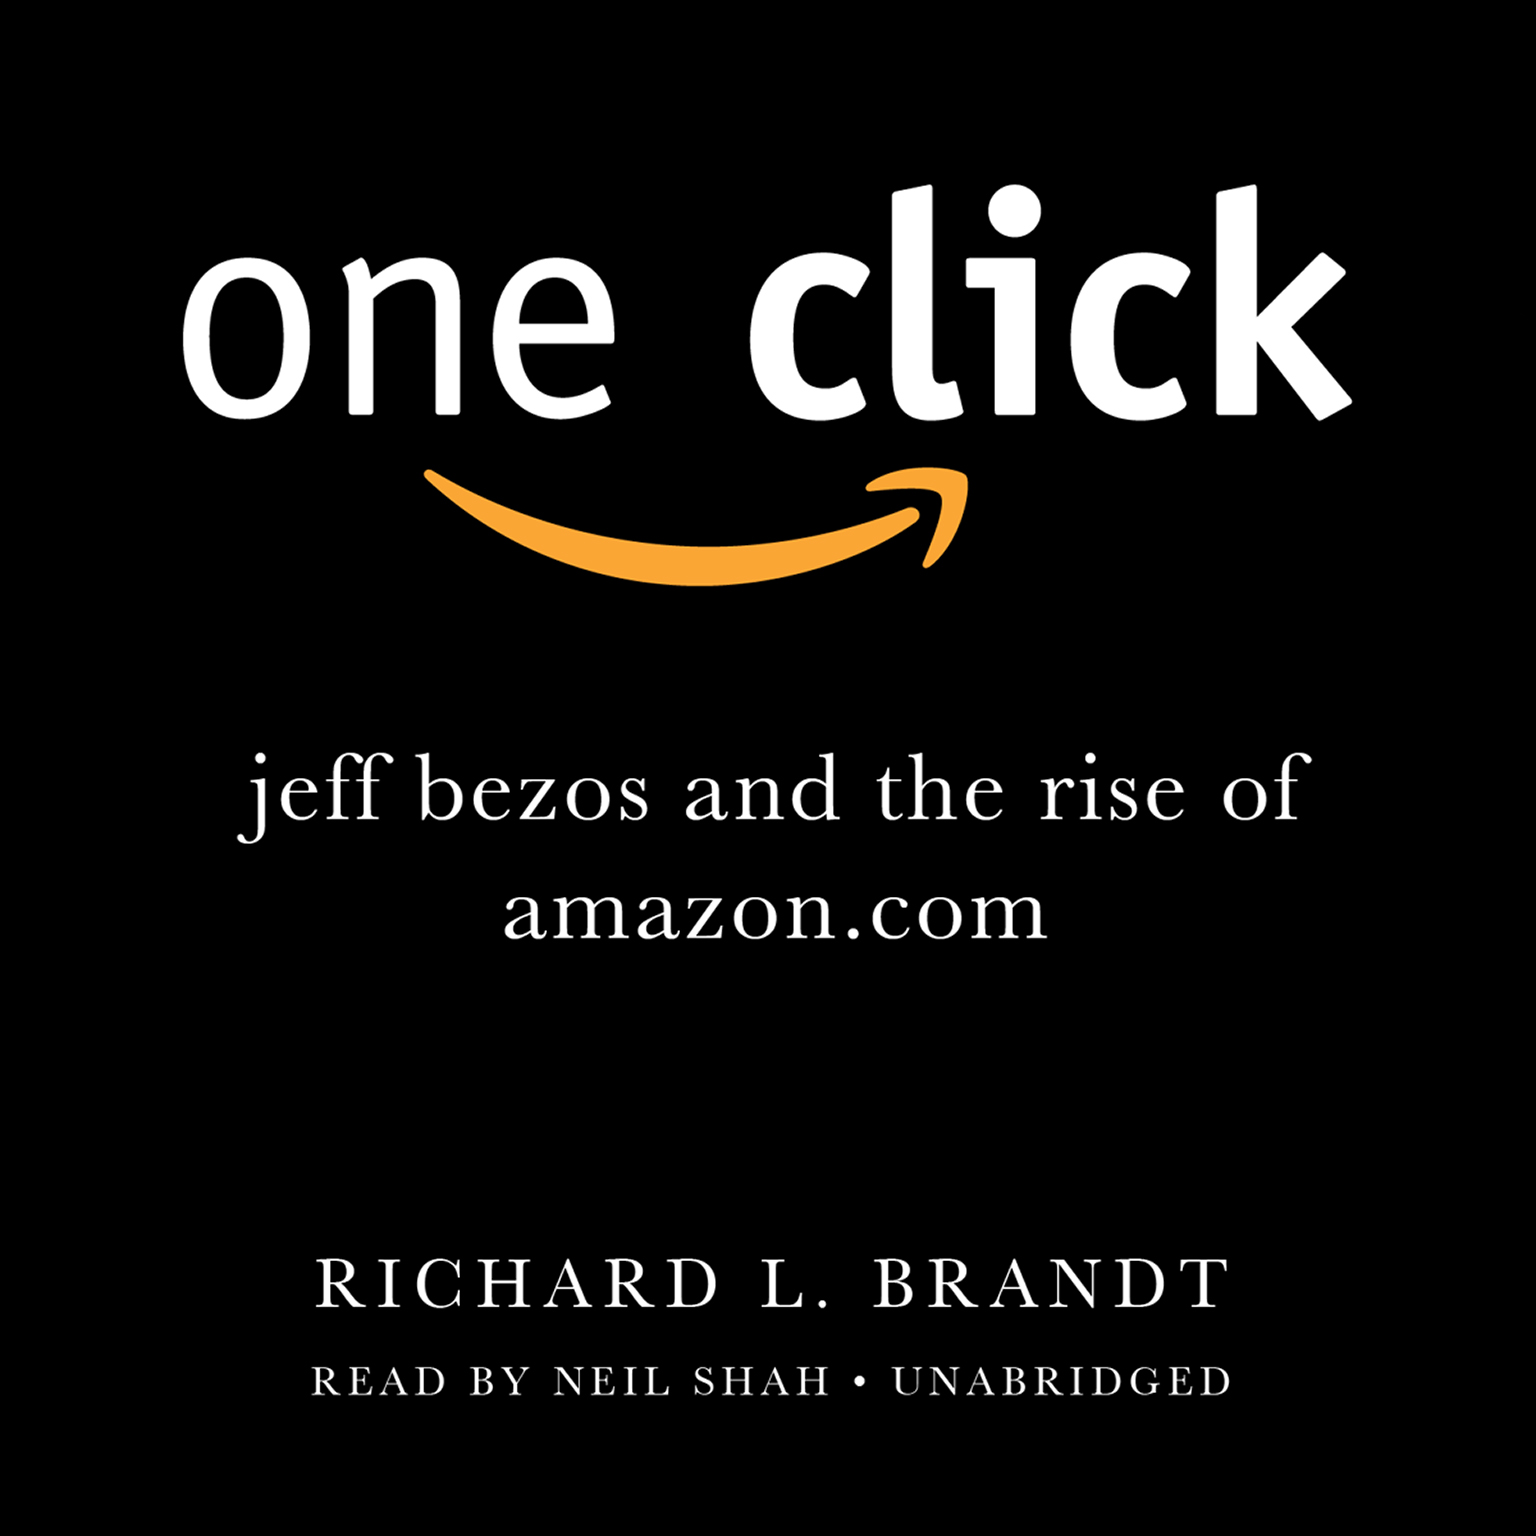 Printable One Click: Jeff Bezos and the Rise of Amazon.com Audiobook Cover Art